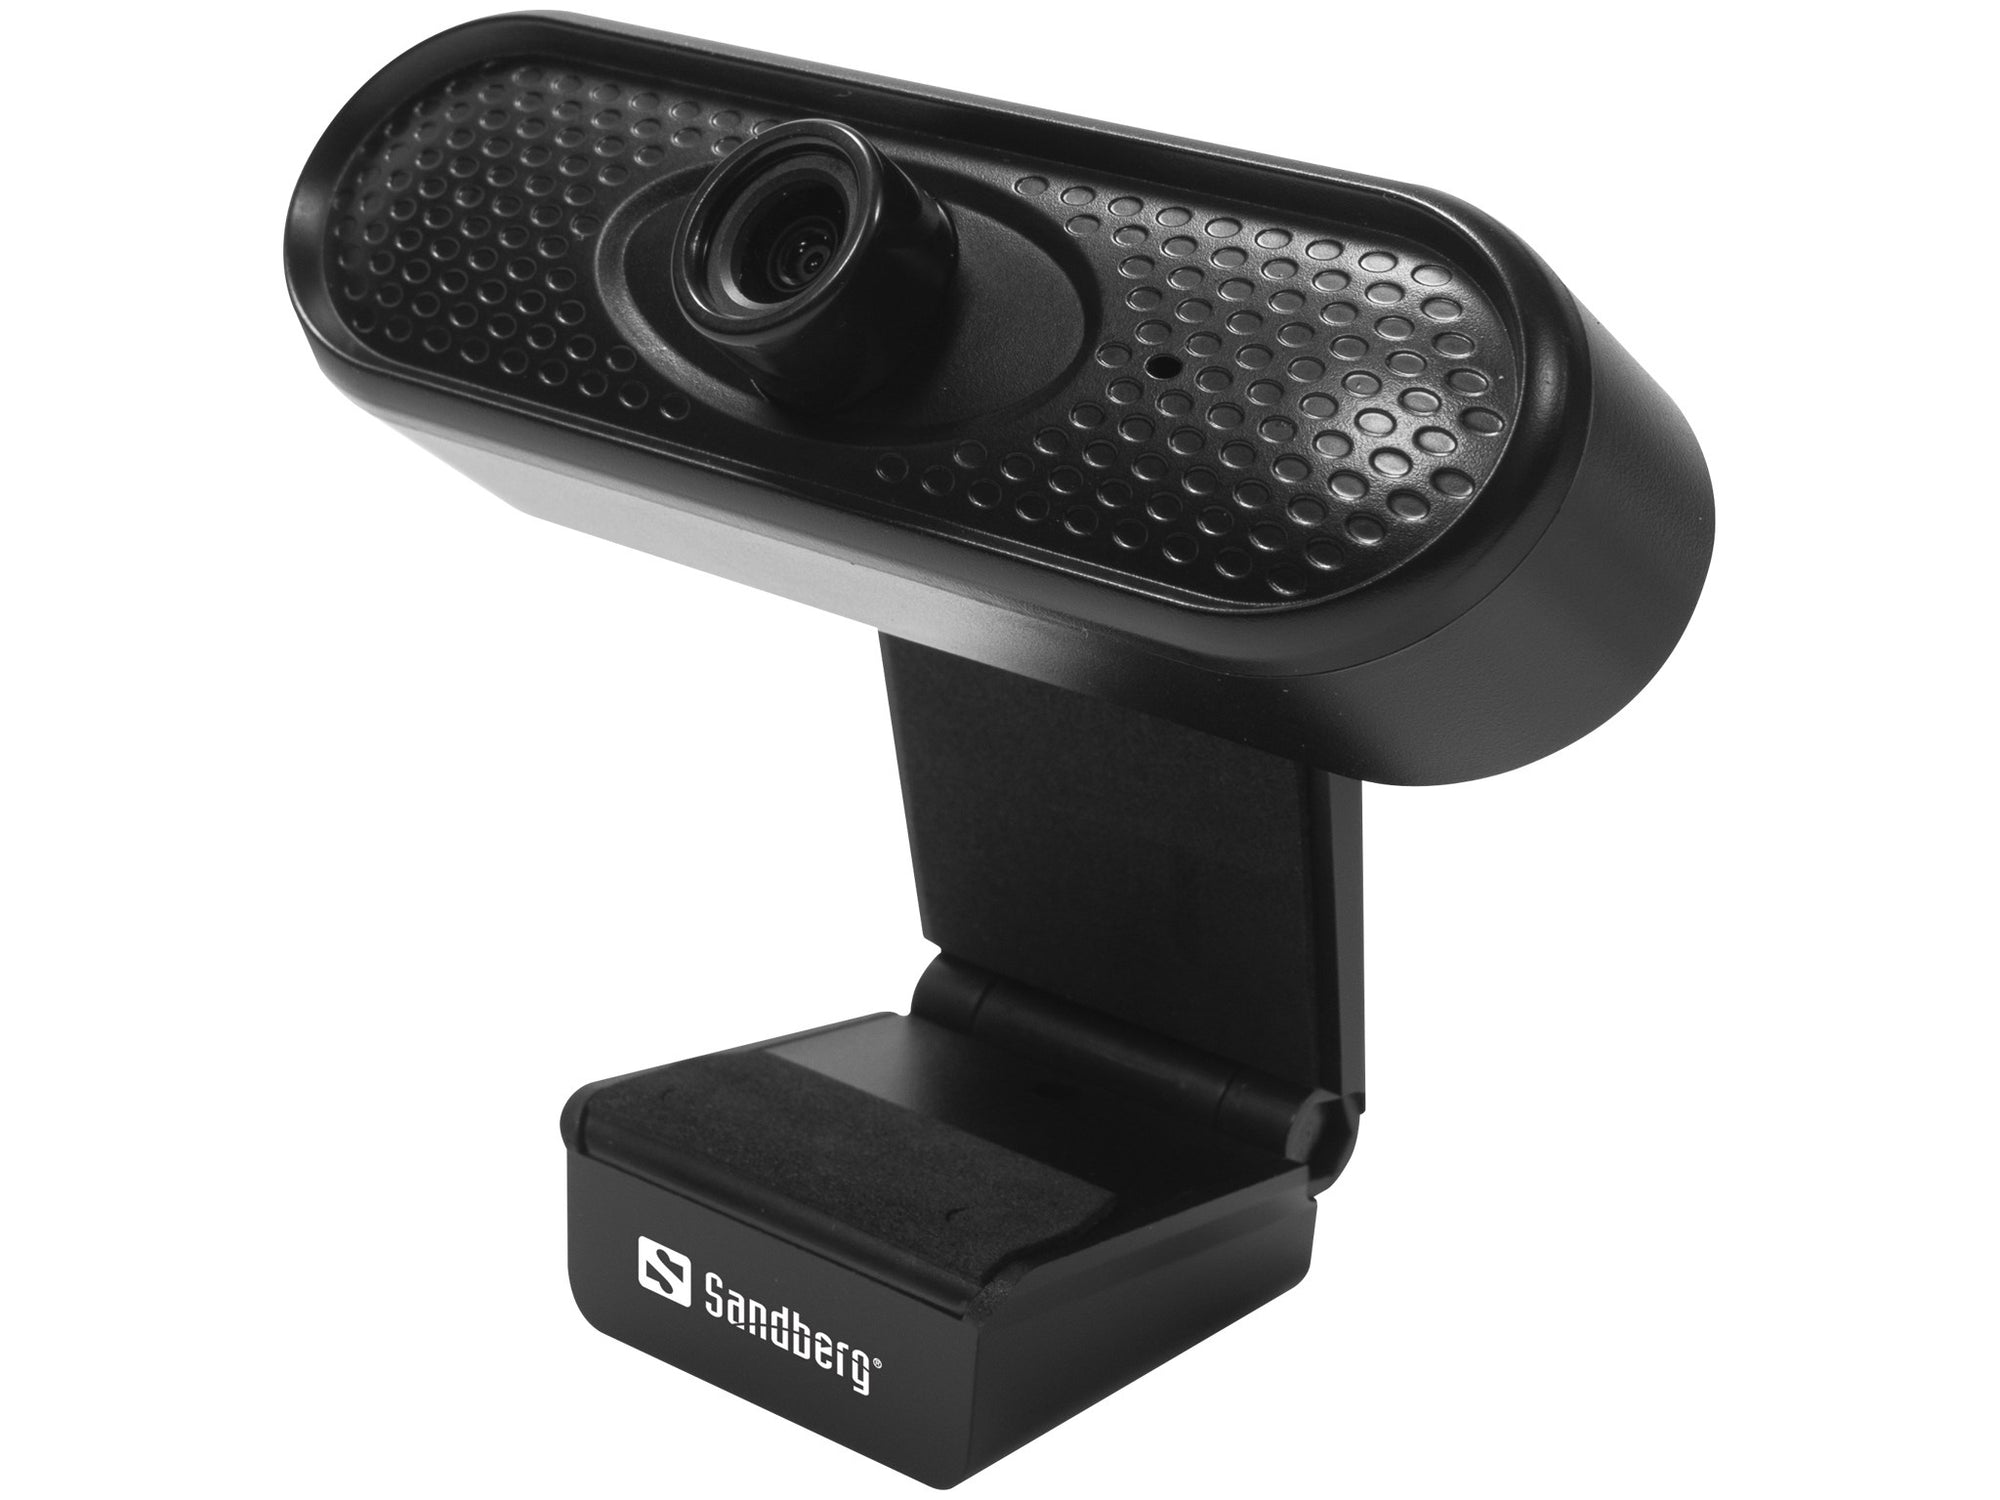 Sandberg USB Webcam 1080P HD, Black